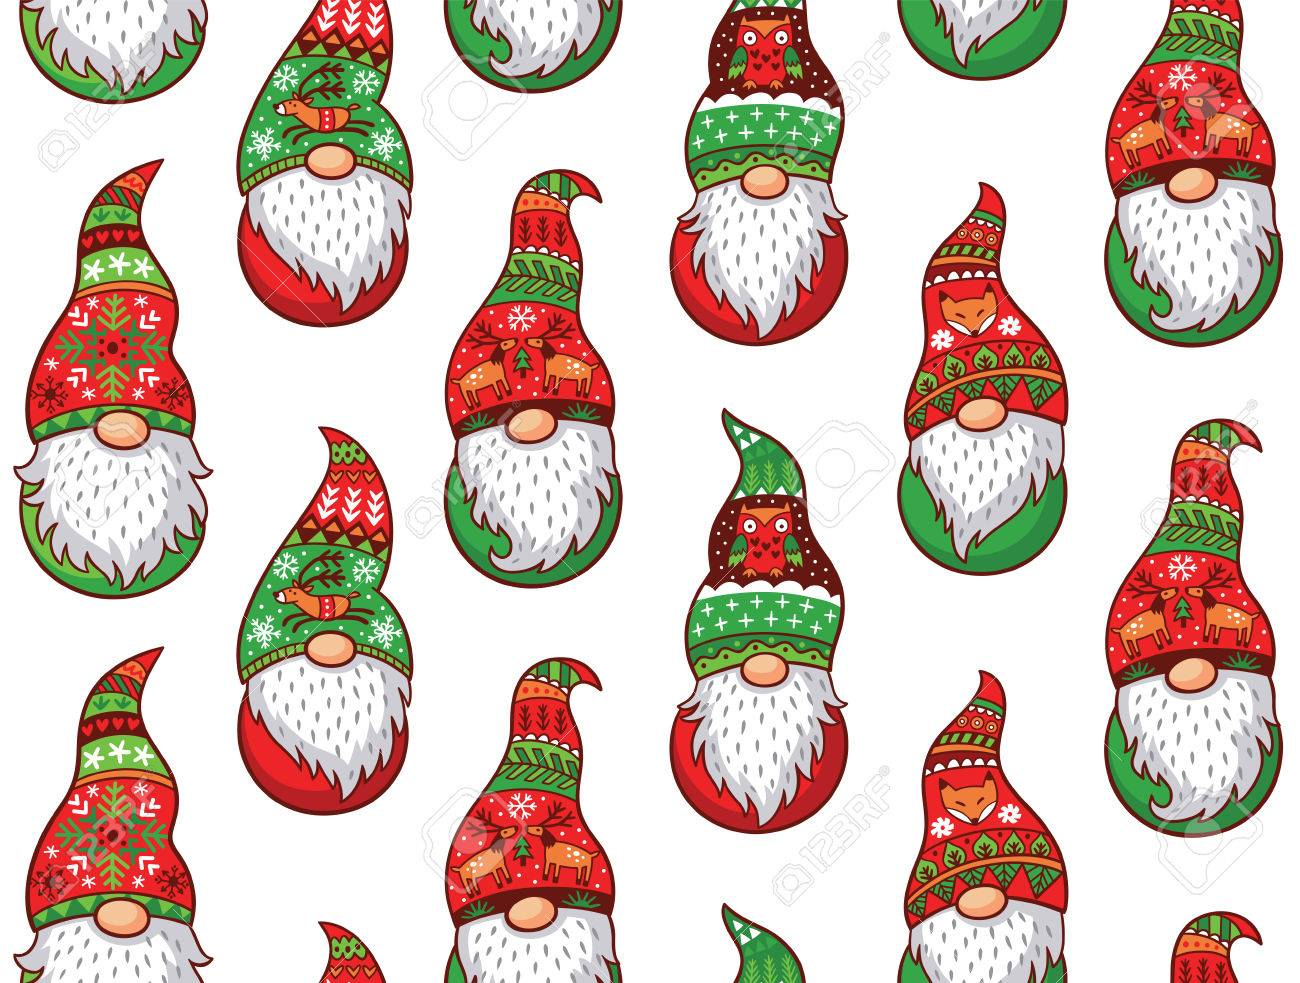 Christmas Gnomes.Christmas Gnomes In Red And Green Hat With Different Ornaments